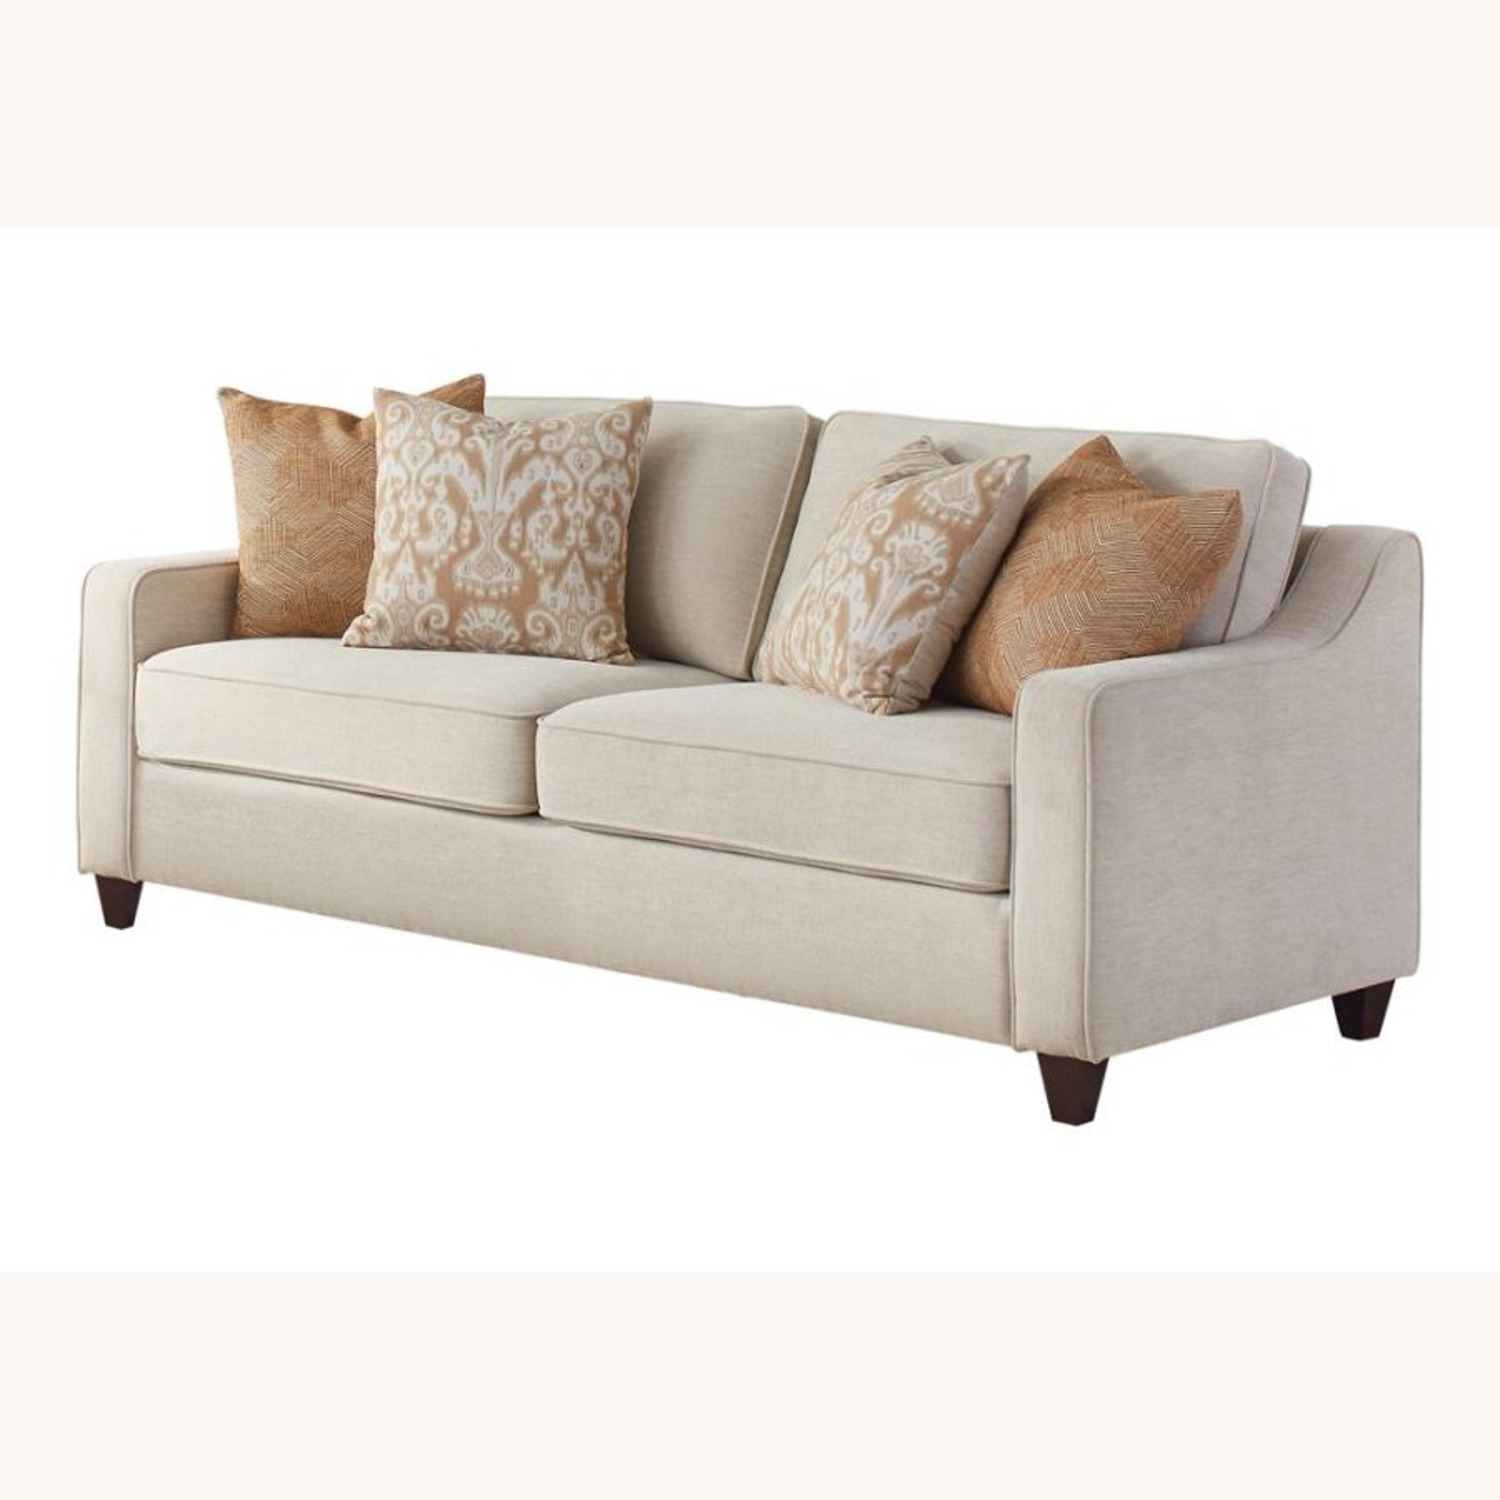 Sofa In Textured Beige Woven Chenille Finish - image-0